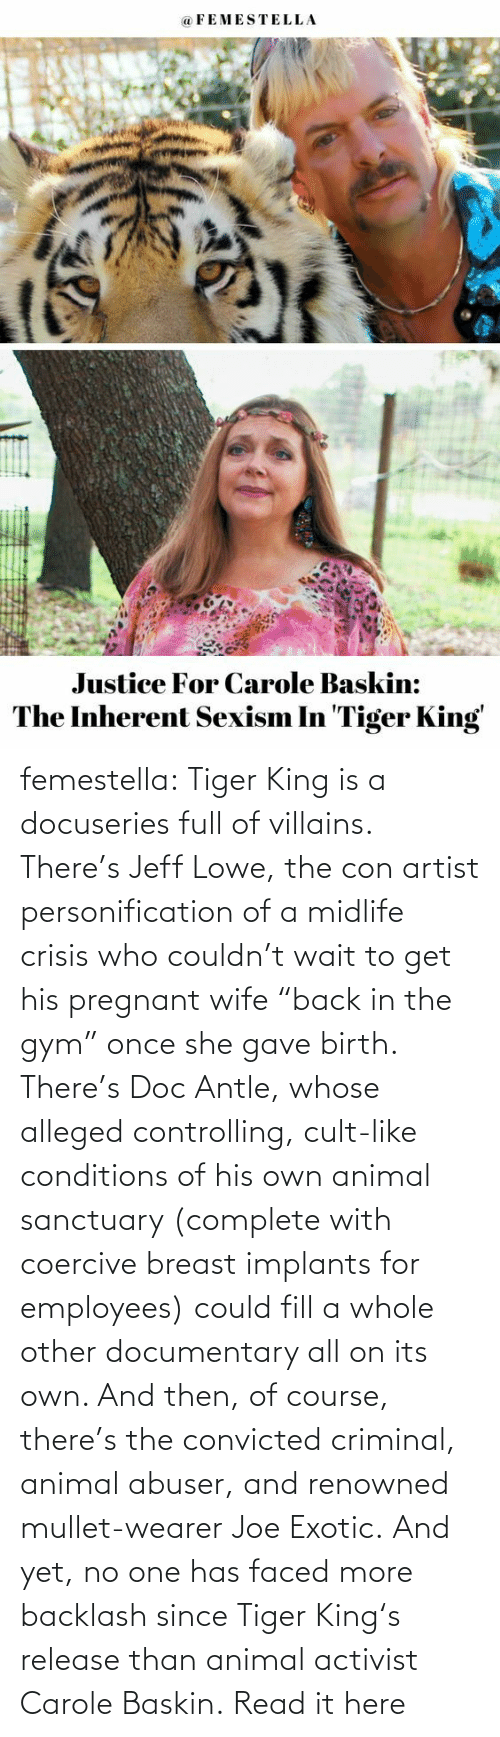 "of course: femestella: Tiger King is a docuseries full of villains. There's Jeff Lowe, the con artist personification of a midlife crisis who couldn't wait to get his pregnant wife ""back in the gym"" once she gave birth. There's Doc Antle, whose alleged controlling, cult-like conditions of his own animal sanctuary (complete with coercive breast implants for employees) could fill a whole other documentary all on its own. And then, of course, there's the convicted criminal, animal abuser, and renowned mullet-wearer Joe Exotic. And yet, no one has faced more backlash since Tiger King's release than animal activist Carole Baskin. Read it here"